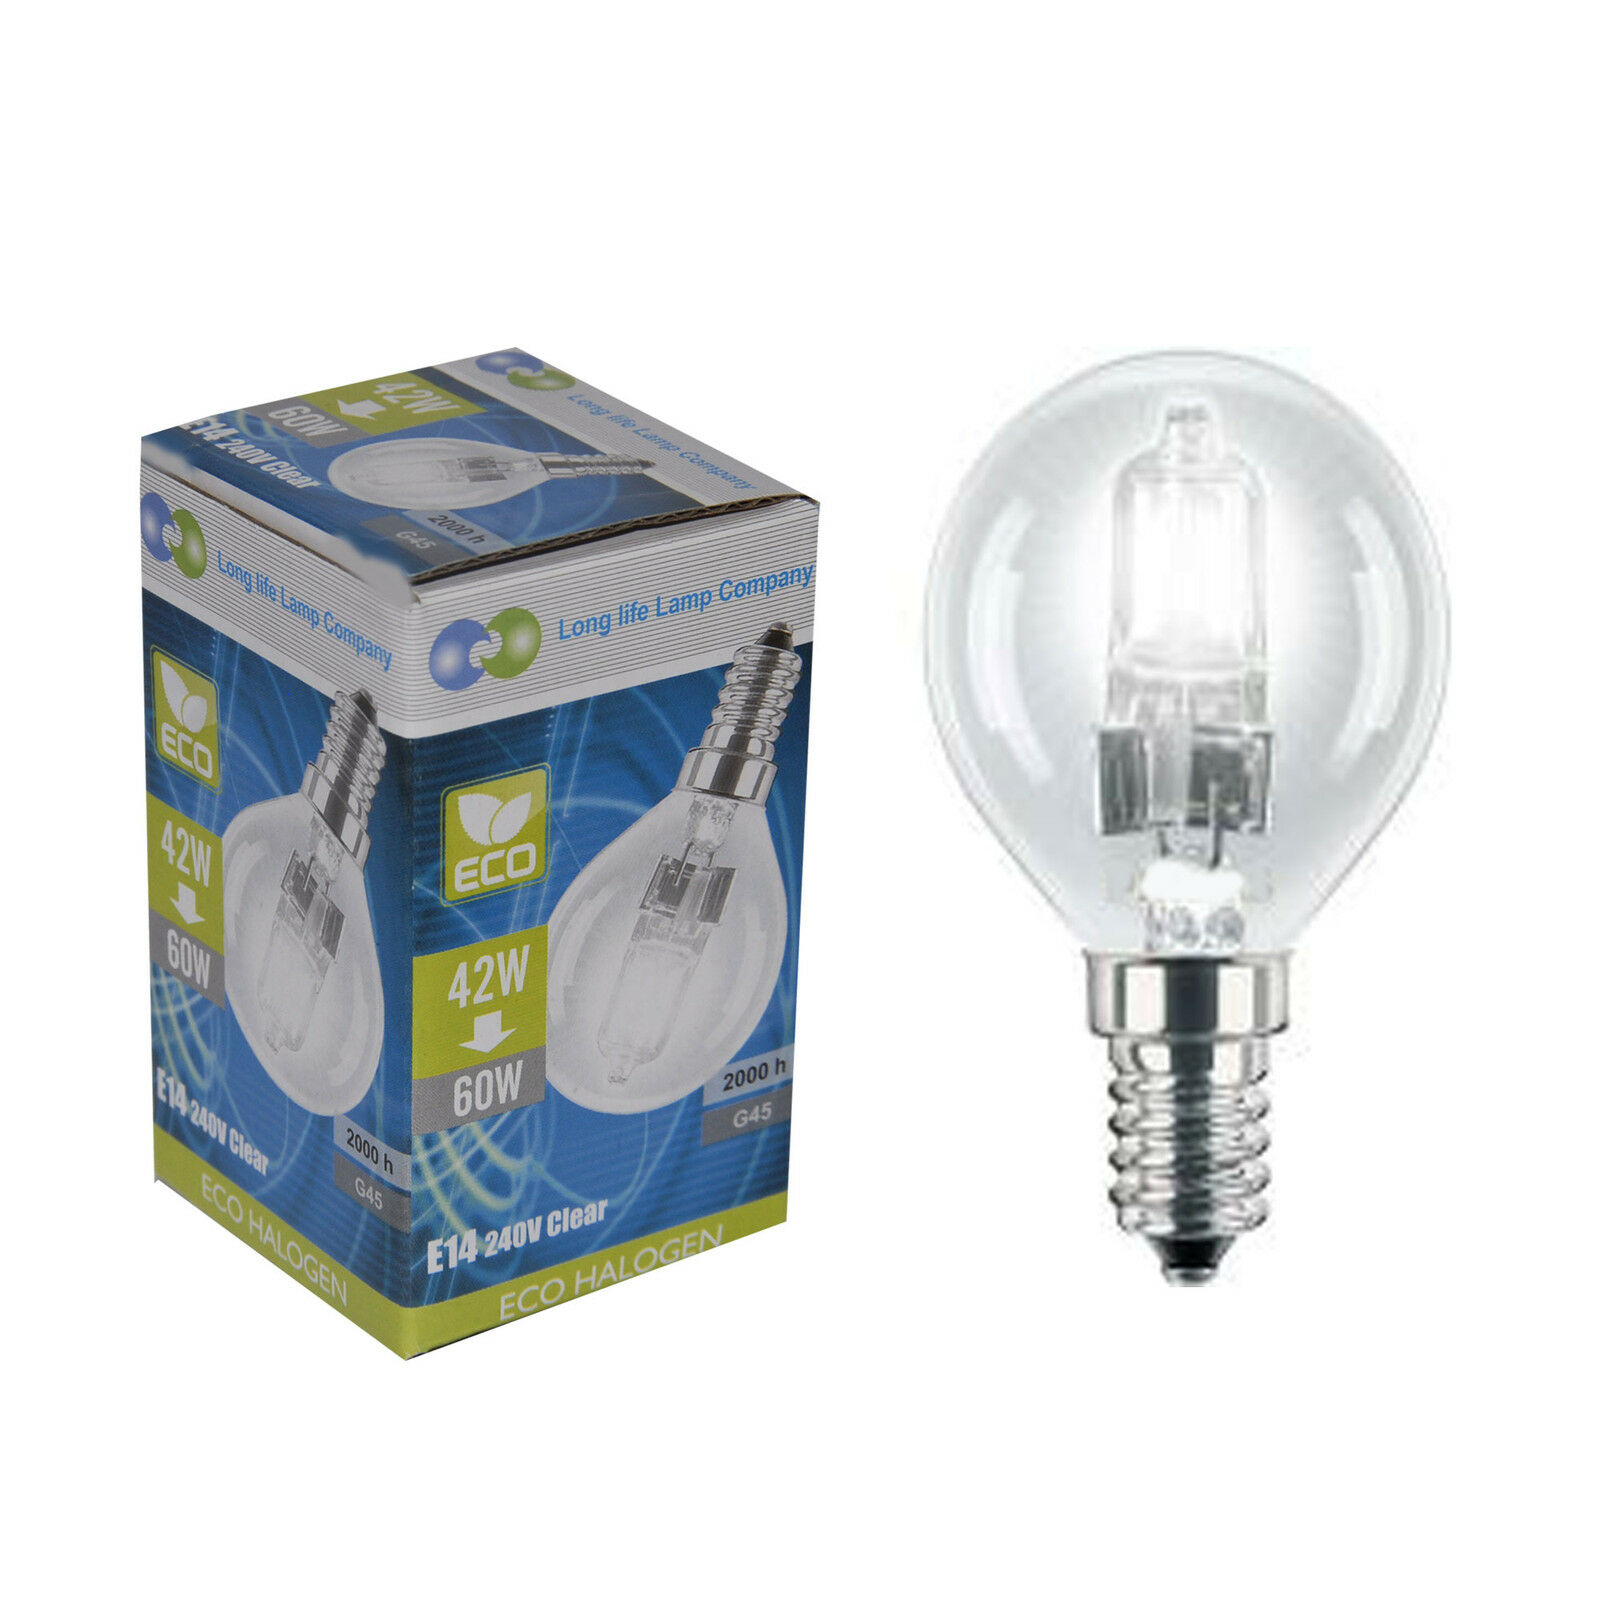 2 Eco Halogen Energy Saving Golf Balls Light Bulb 42w 60w E14 Ses Edison Screw Ebay